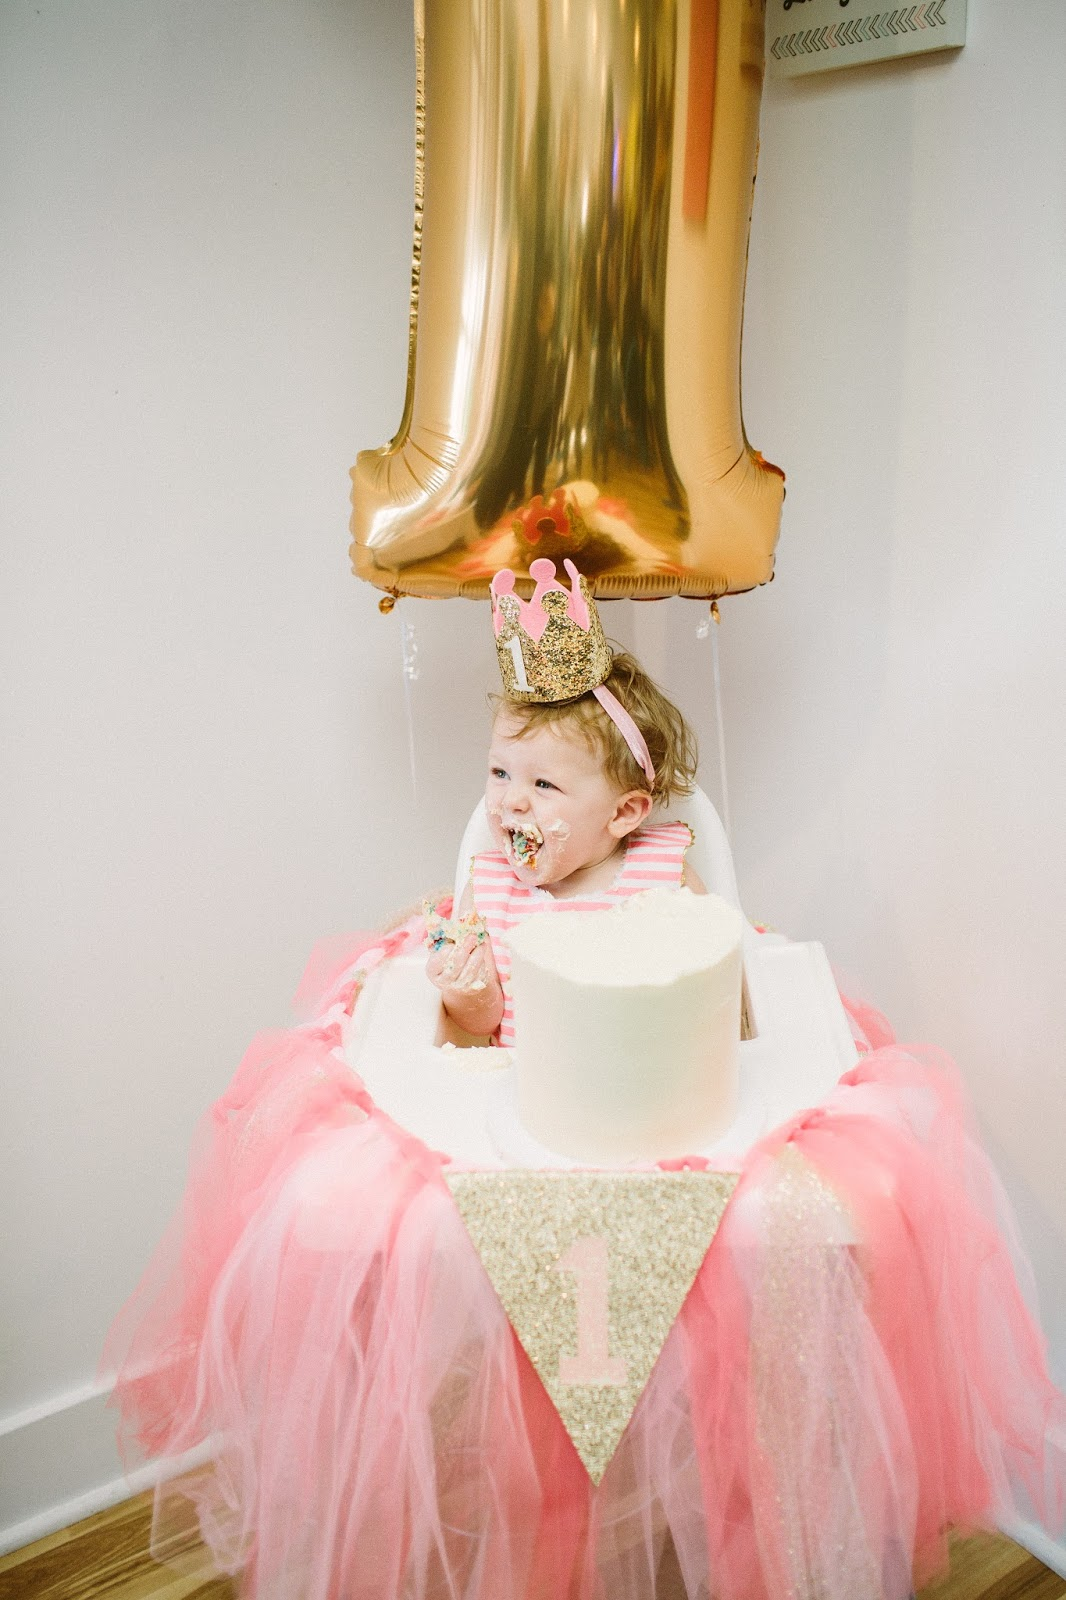 First Birthday Party, Smash Cake, Cute Birthday Girl